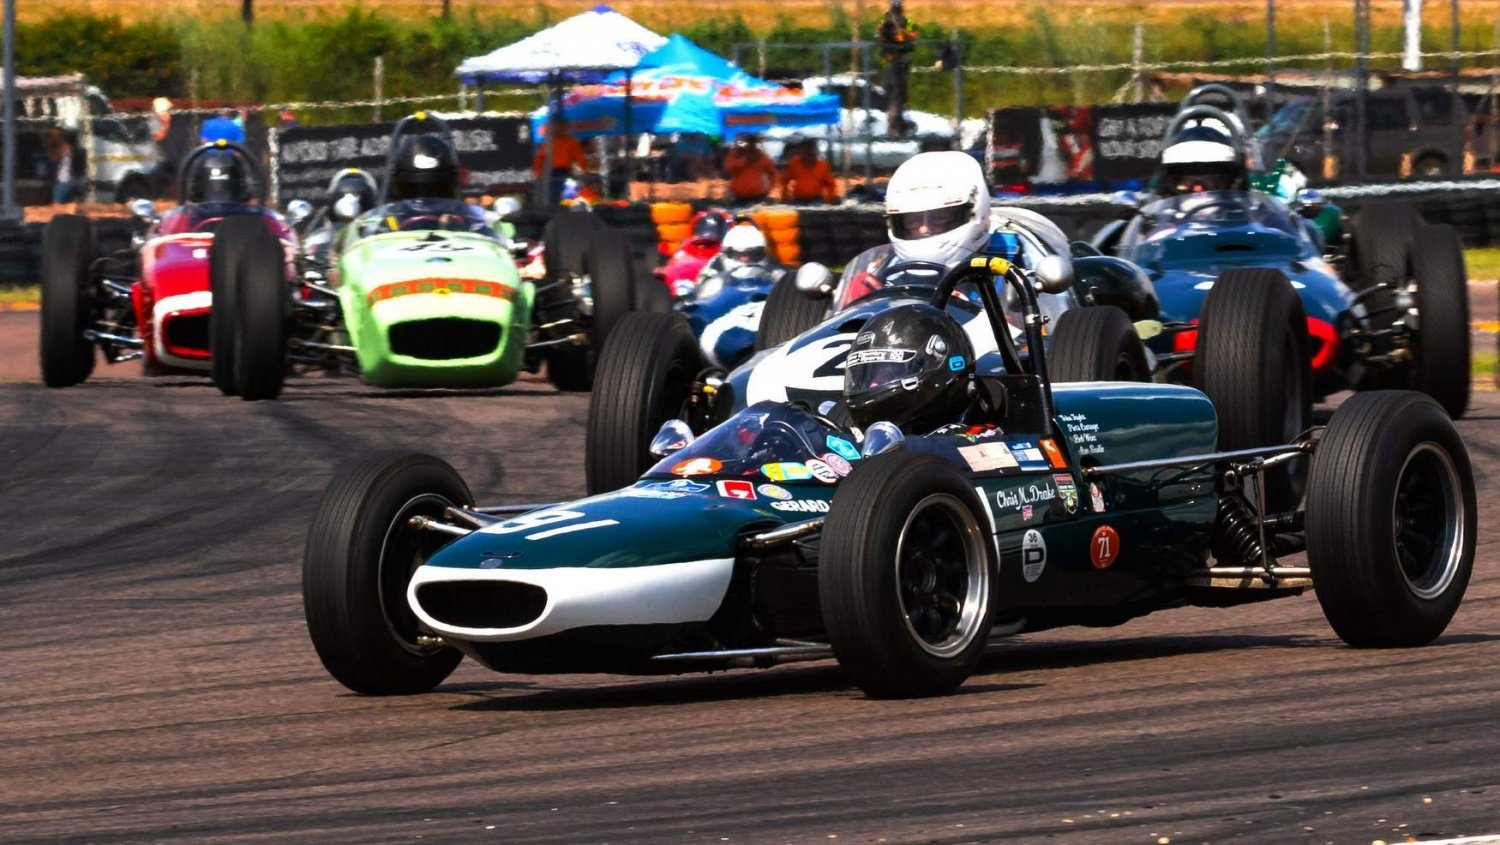 Historic Racing in the spotlight with events in Germany and South Africa